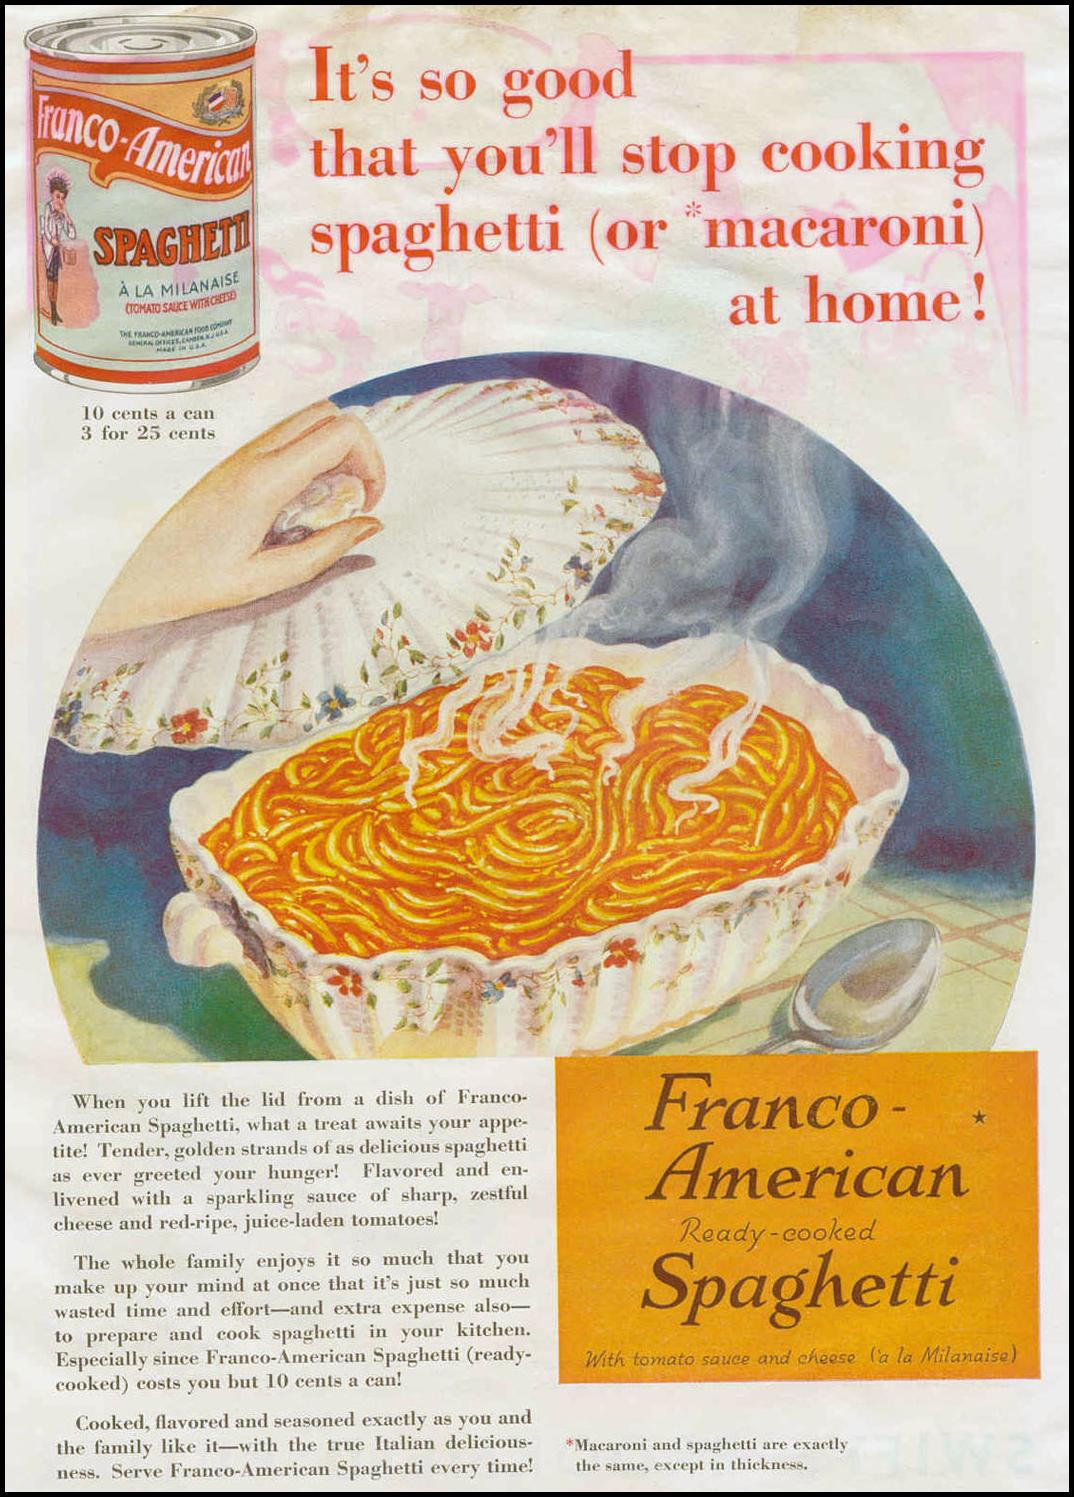 FRANCO-AMERICAN READY-COOKED SPAGHETTI GOOD HOUSEKEEPING 06/01/1933 p. 93